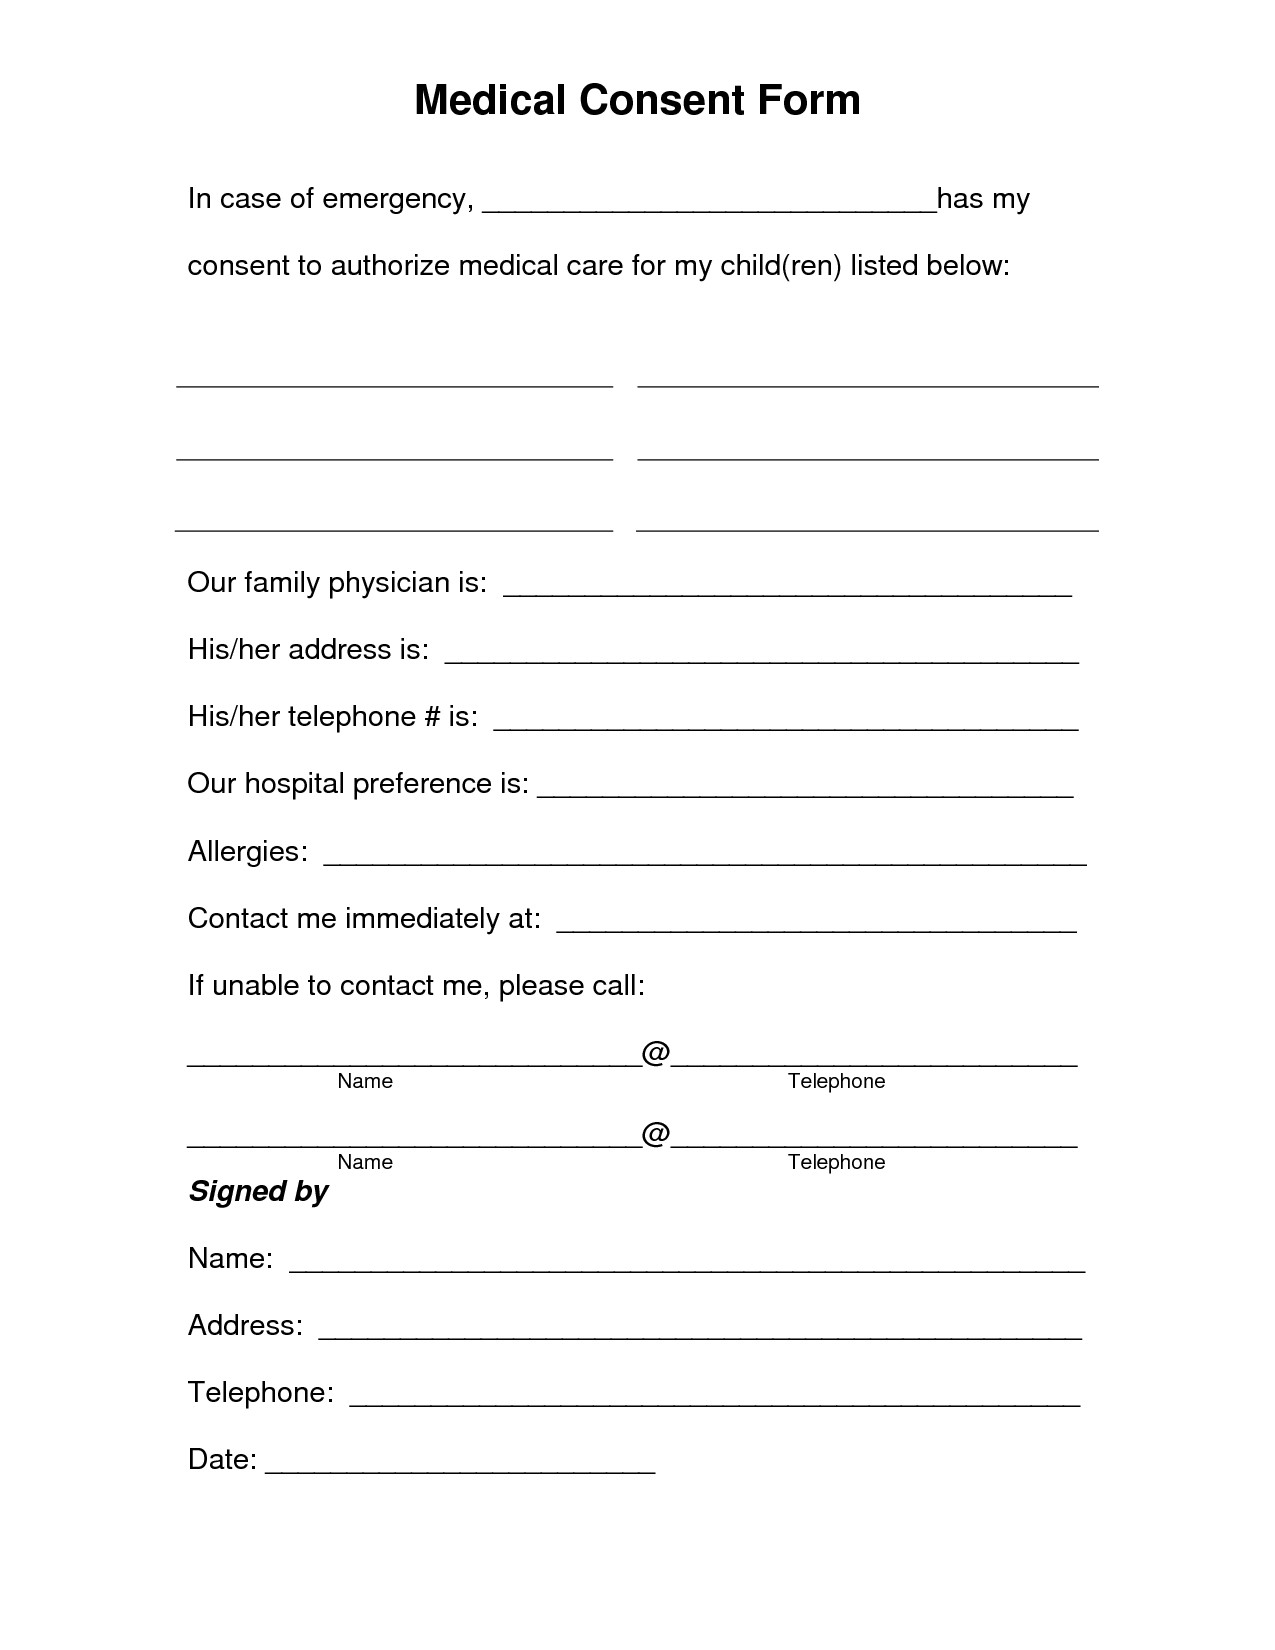 Medical Release form Templates Free Printable Medical Consent form